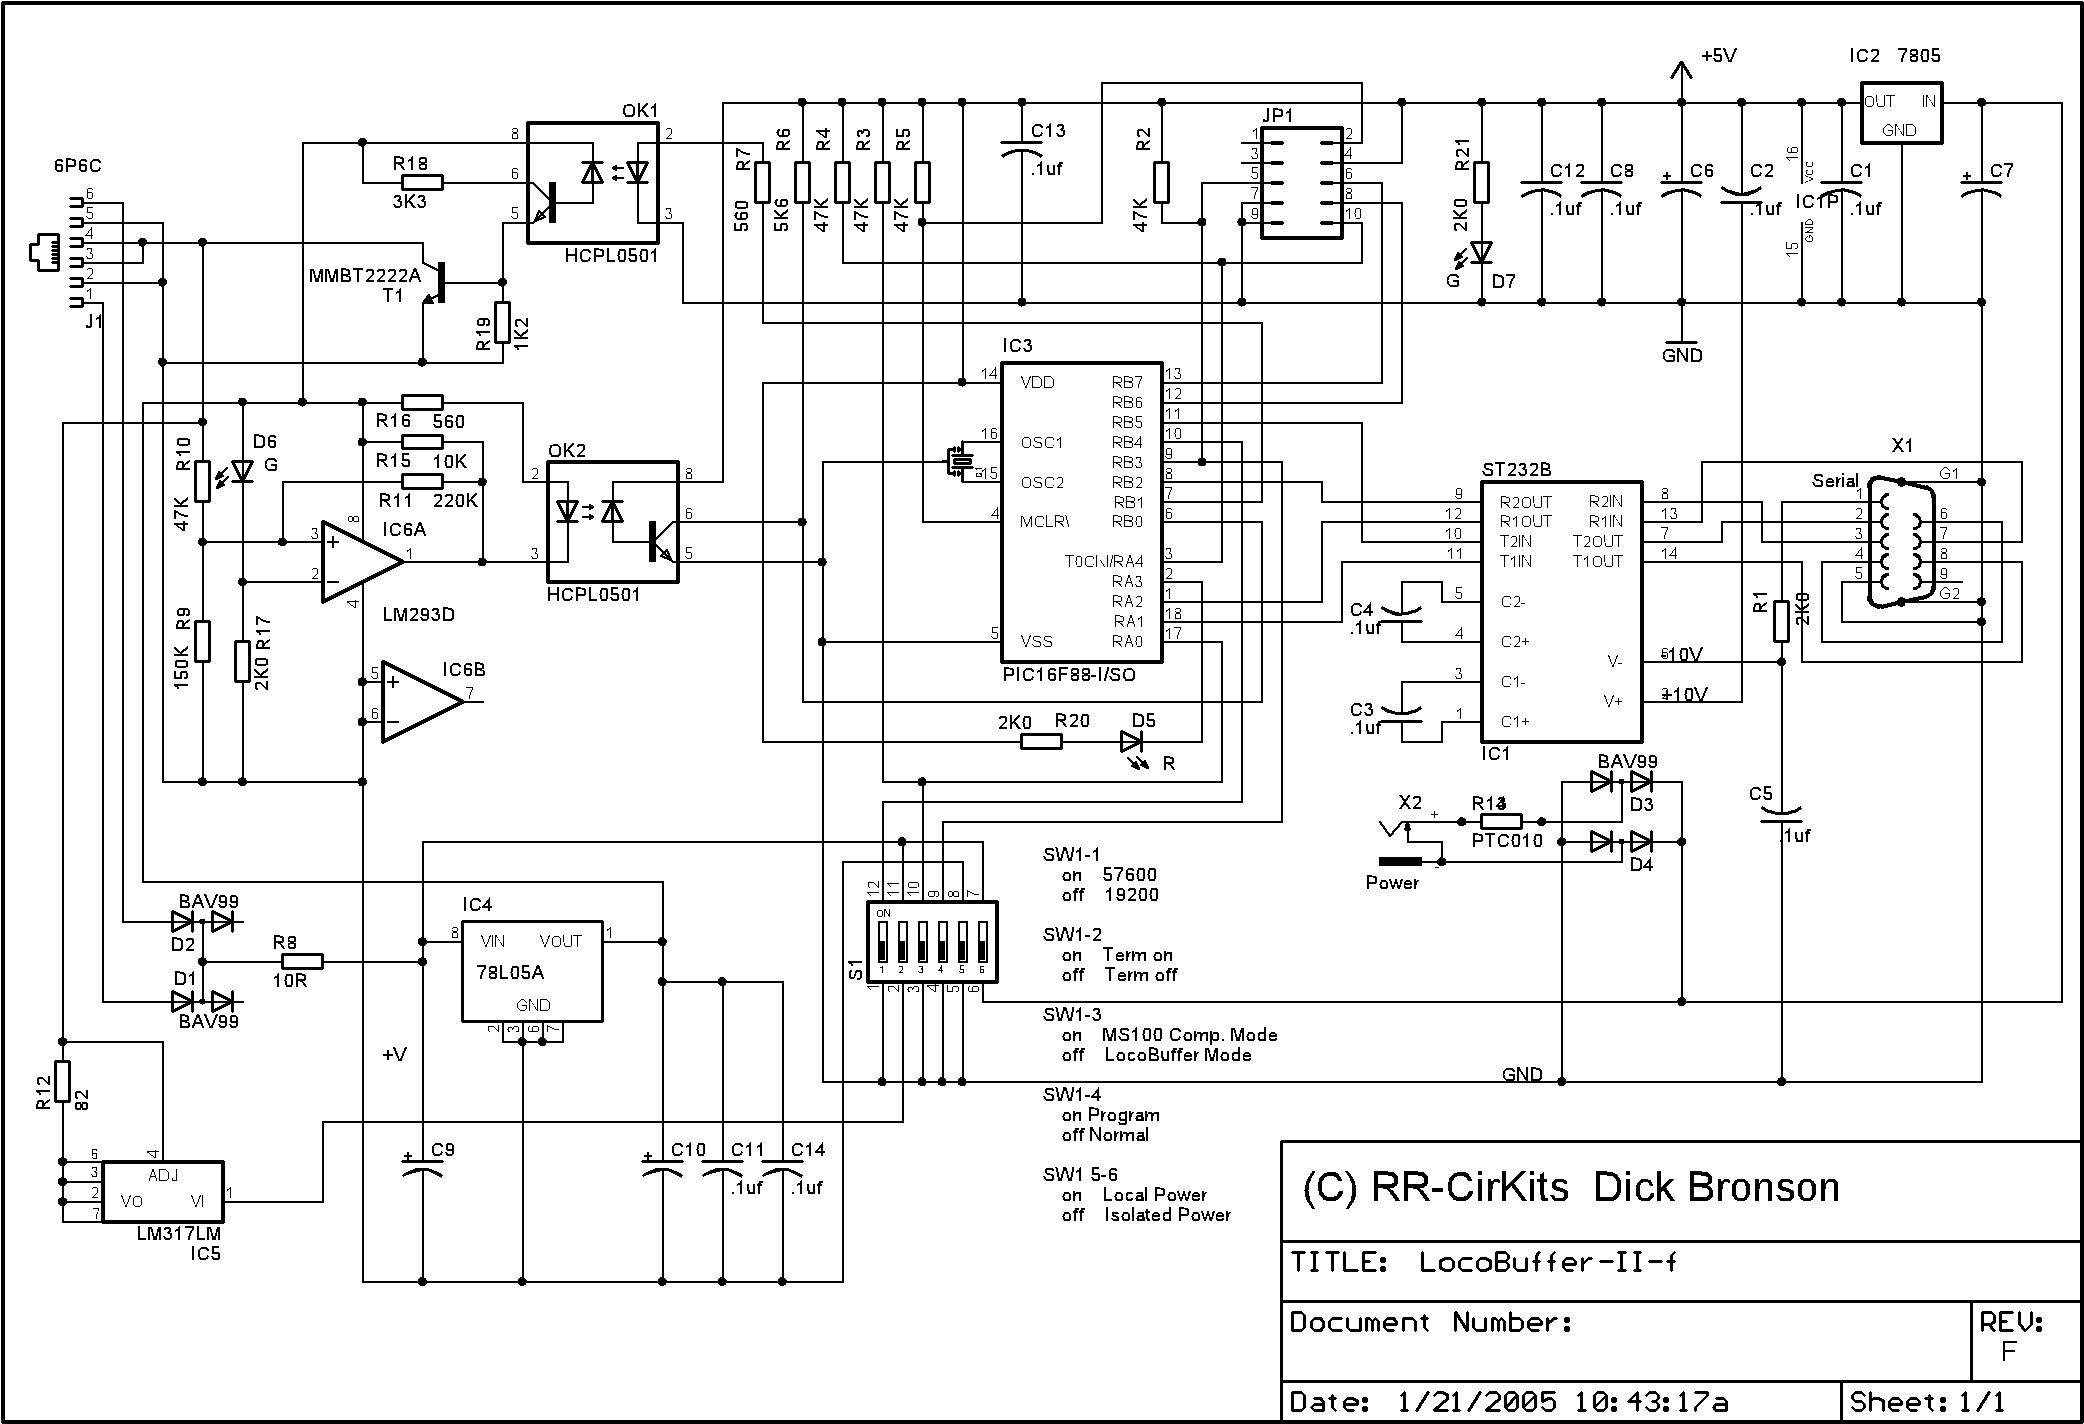 locobuffer ii schematic notes this new schematic is for the revised version of the locobuffer ii these revisions include extensive internal changes to convert it to smt